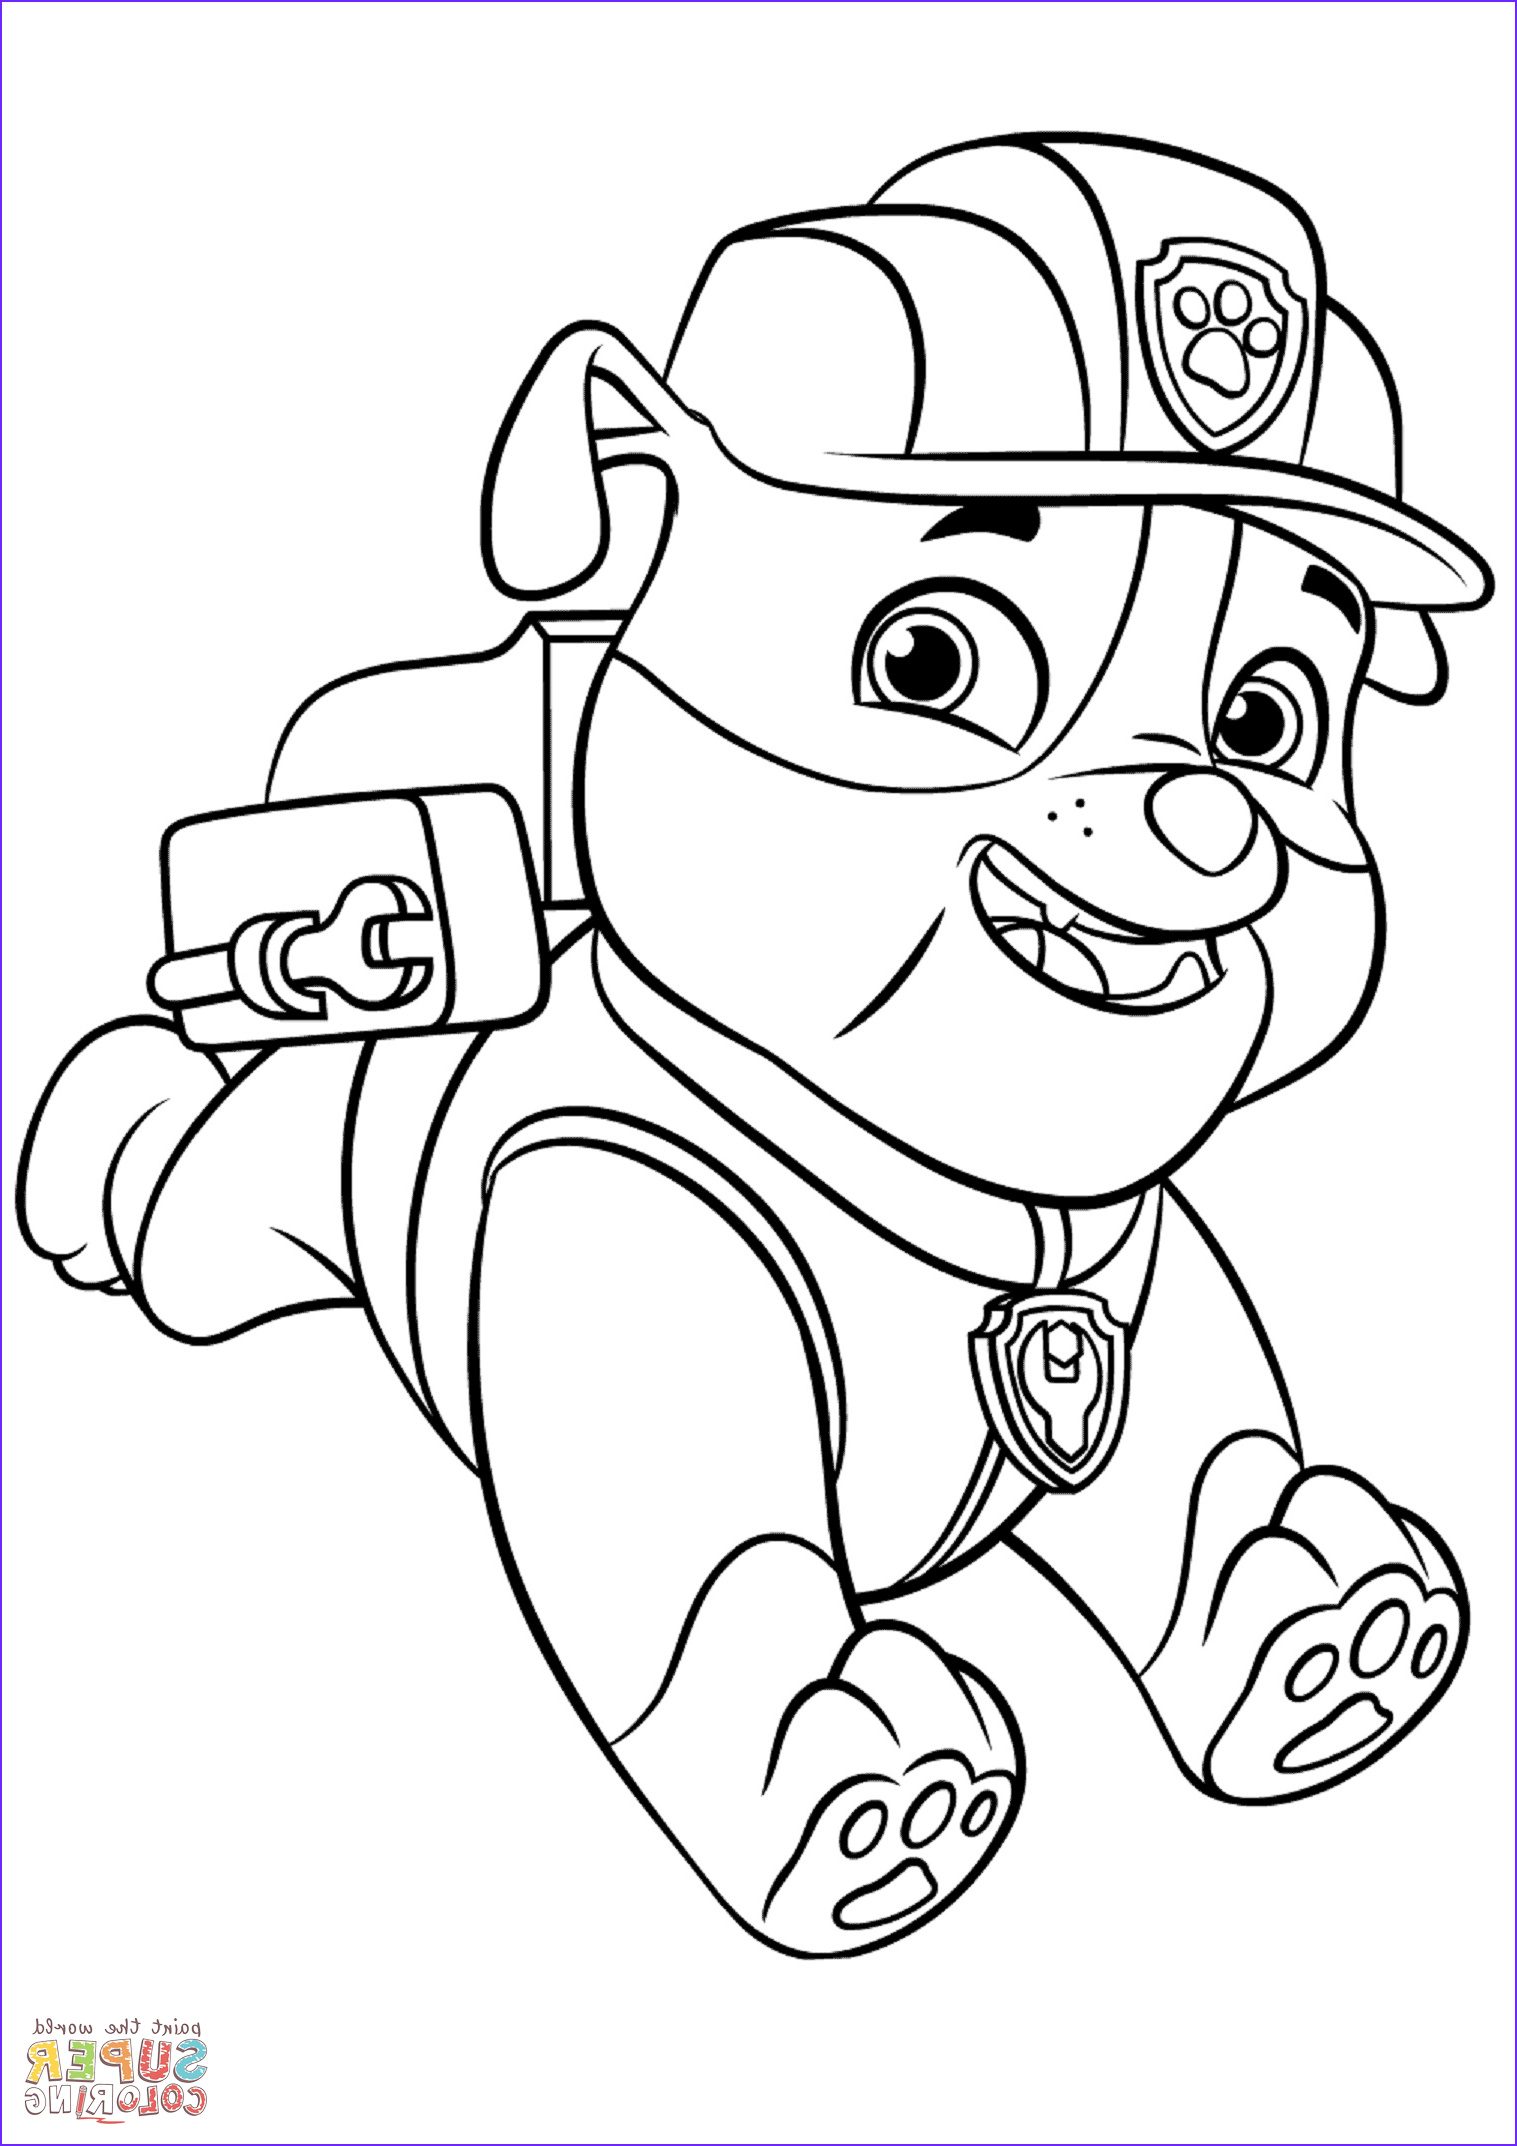 Paw Patrol Coloring Page Luxury Gallery Paw Patrol Rubble with Backpack Super Coloring